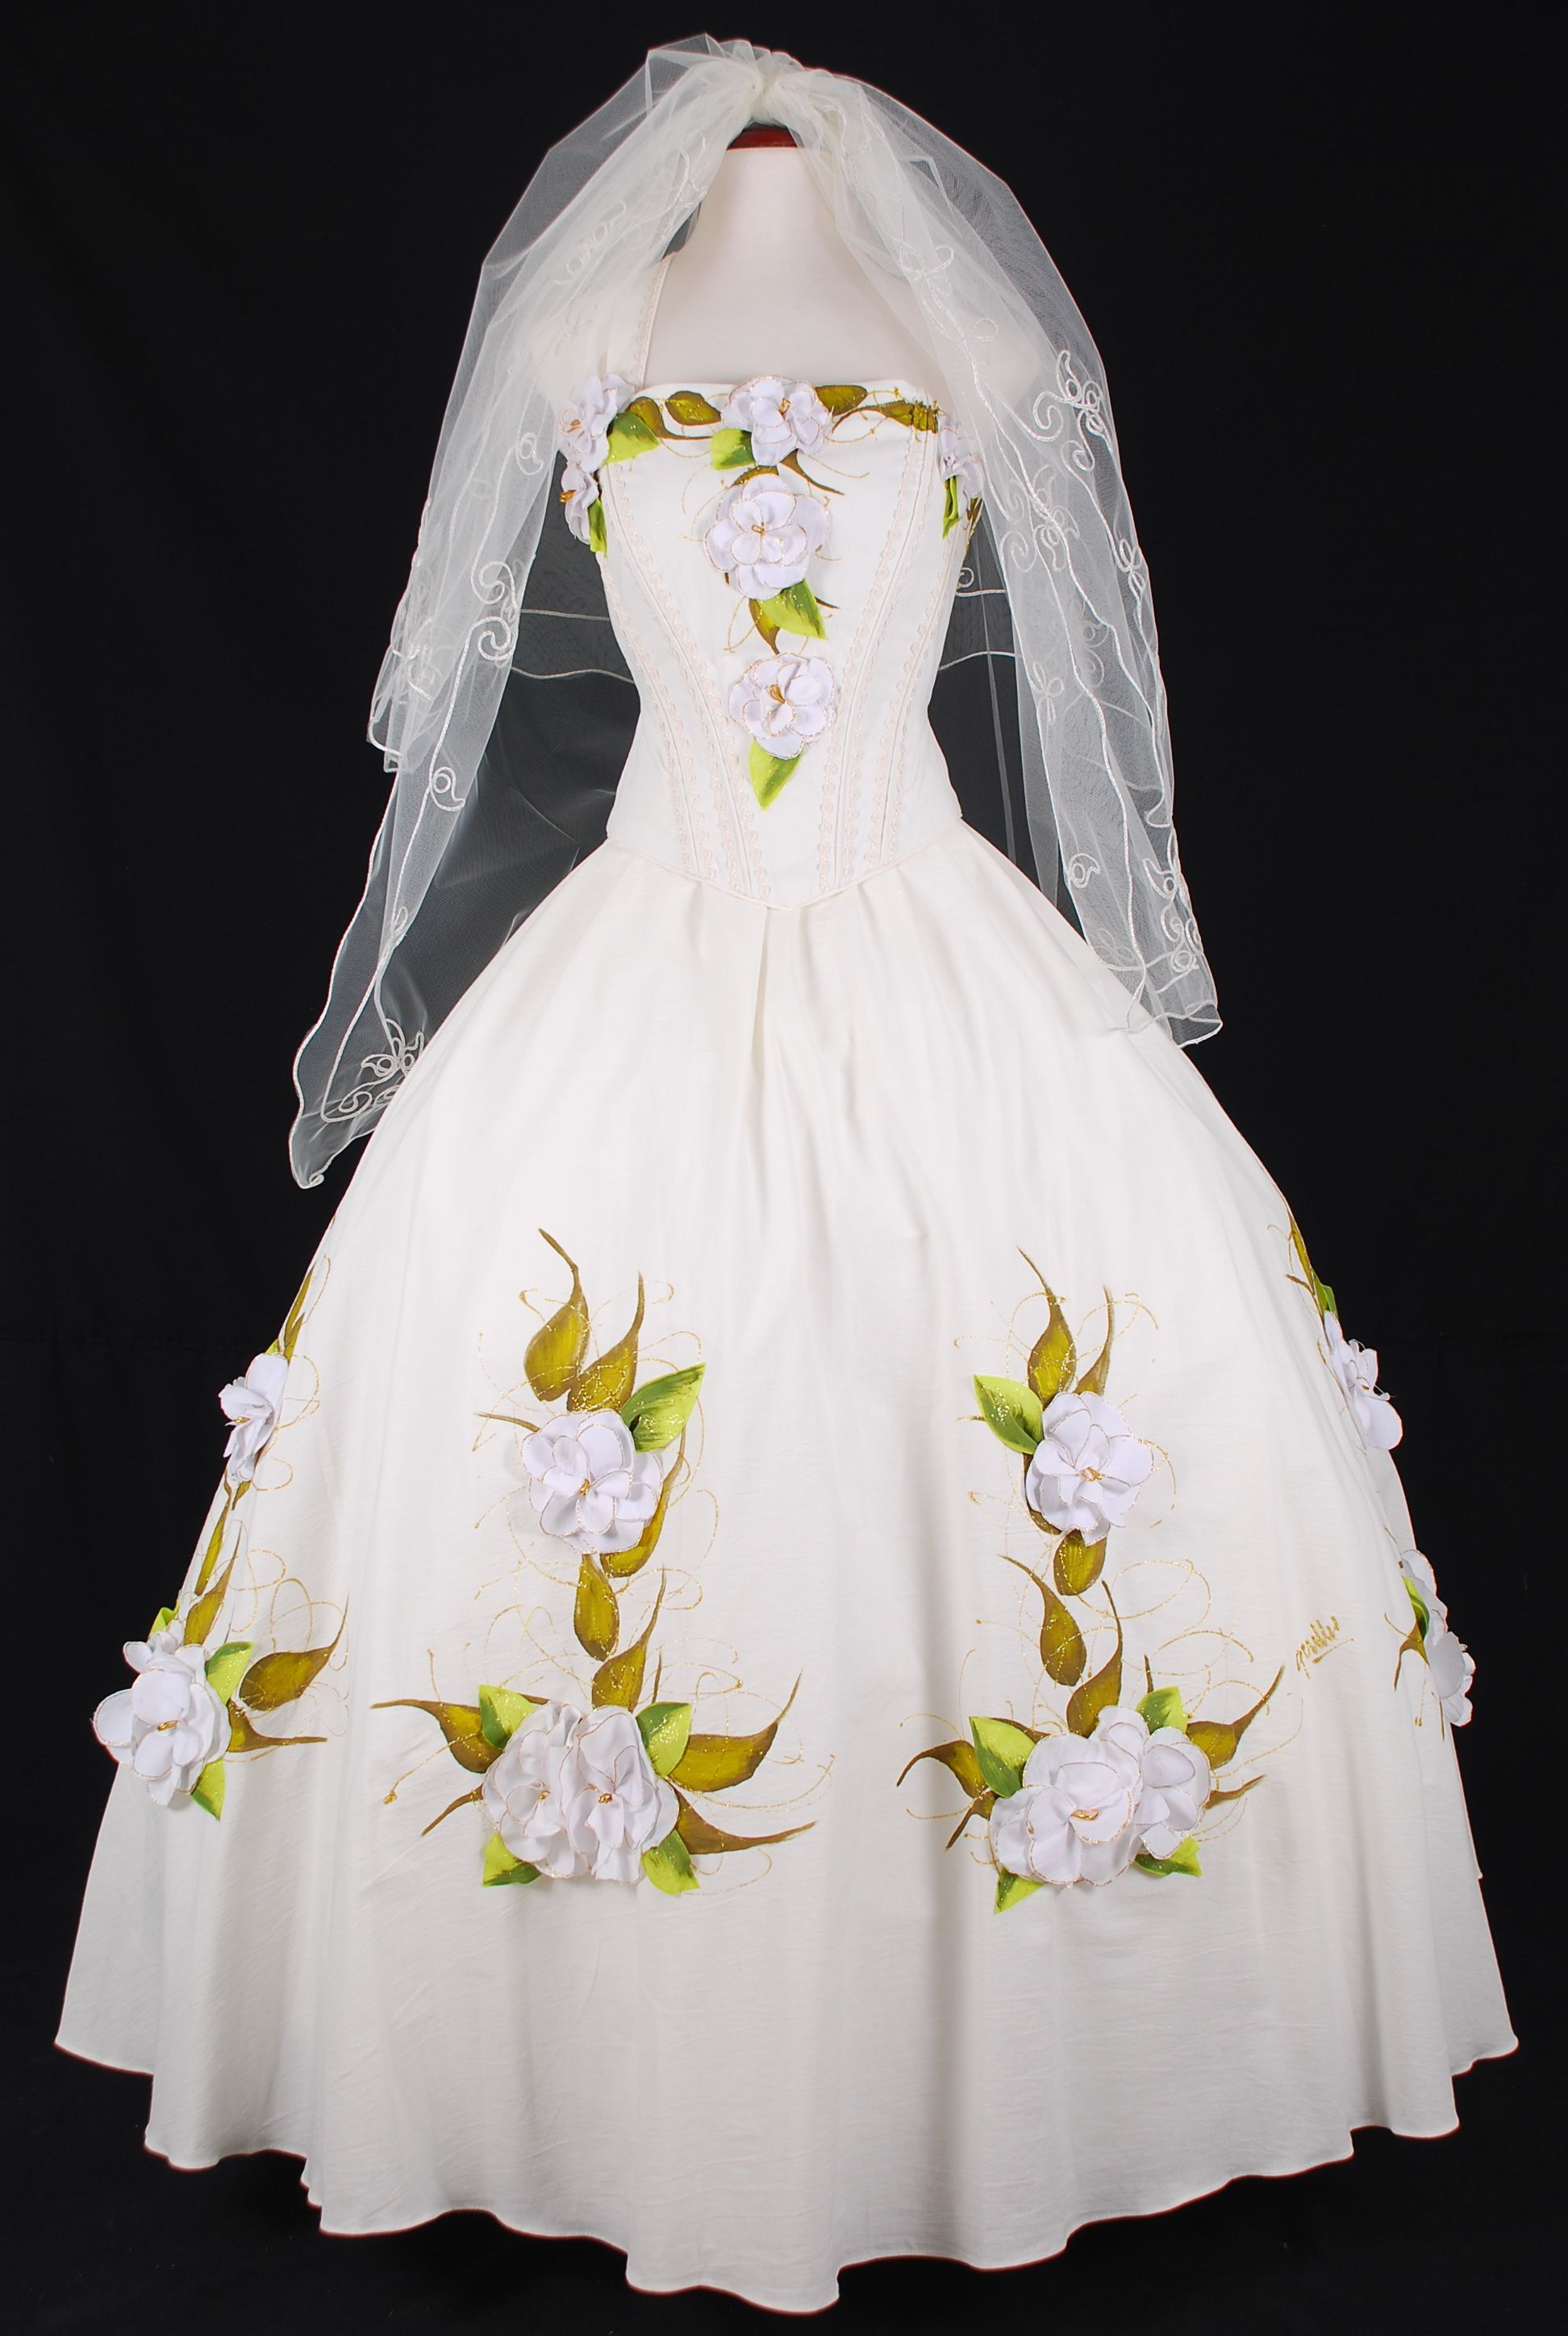 Mexican style wedding dress  This is the design style I want for my Mexican wedding dress